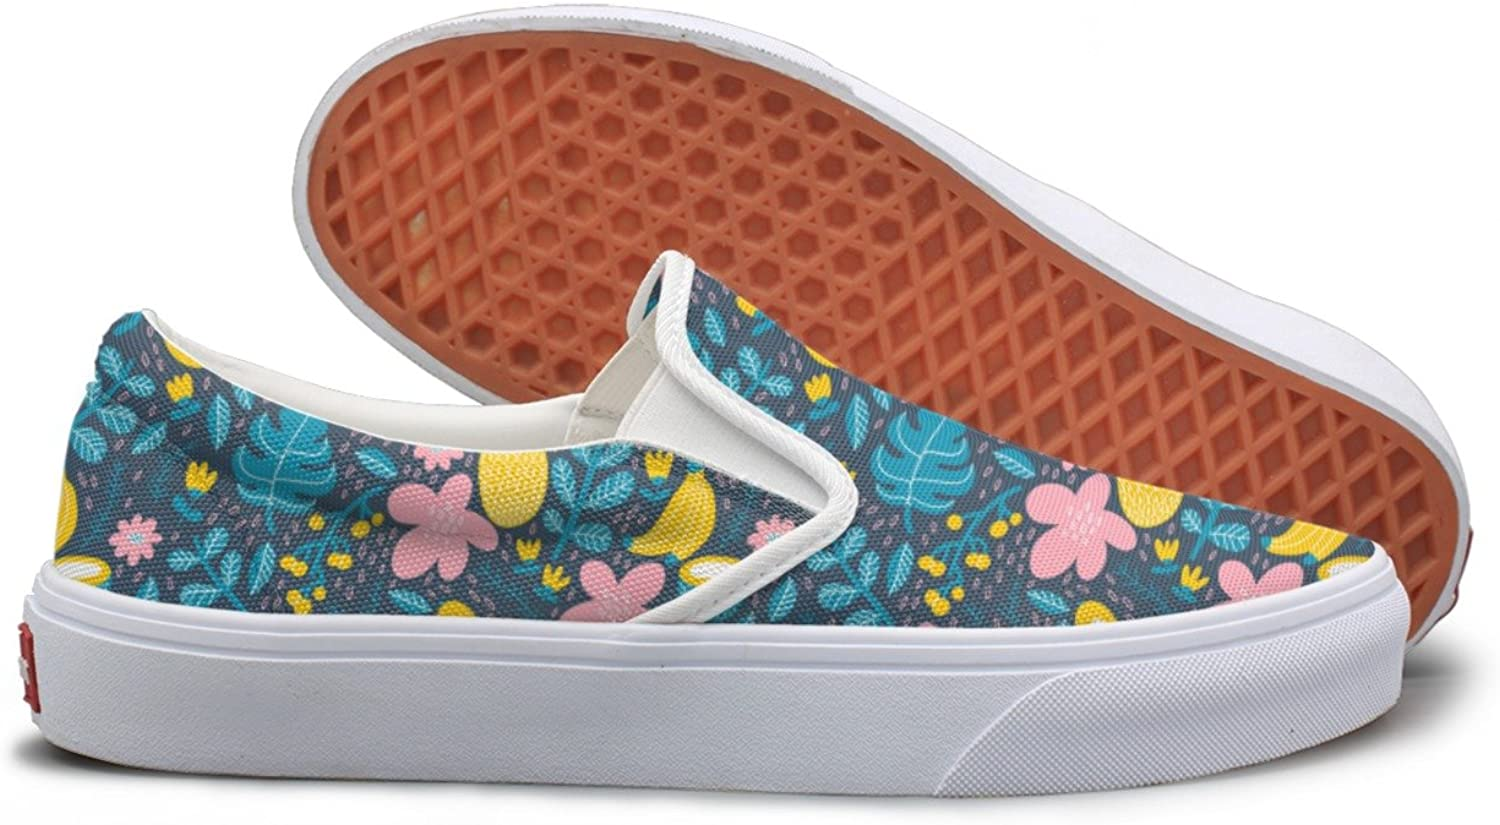 SEERTED Exotic Tropical Fruits Casual Sneakers for Women Wide Width